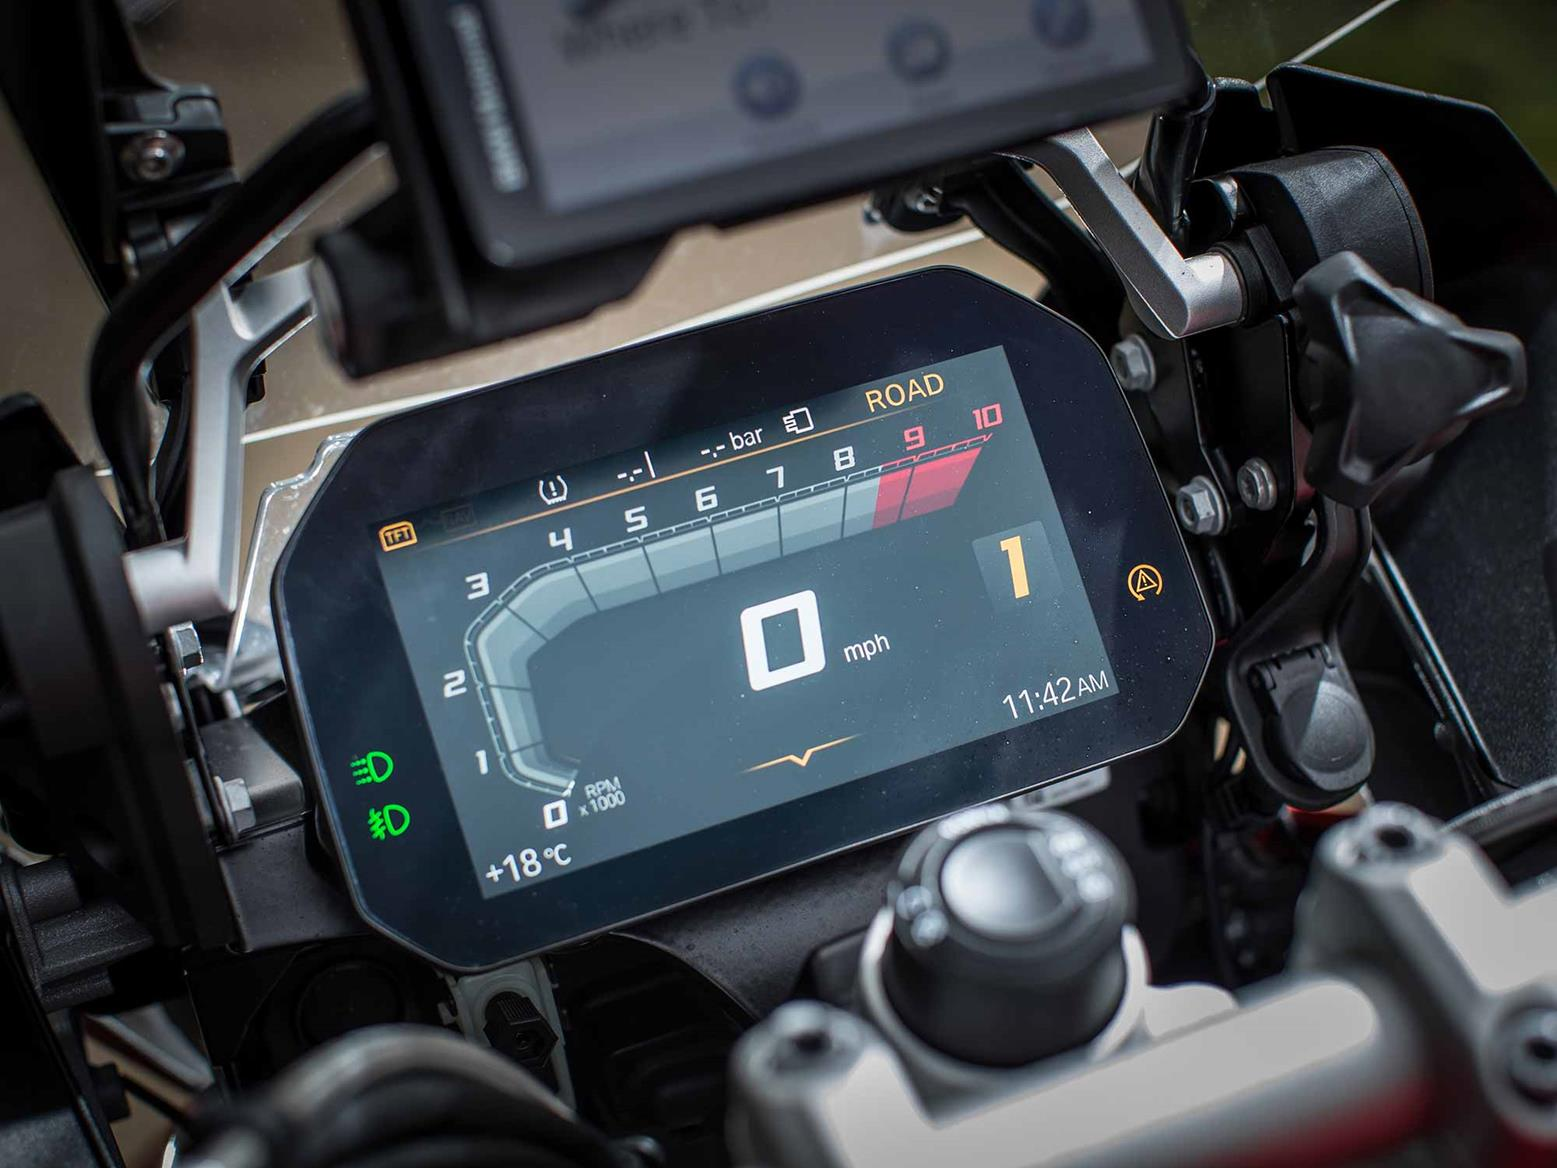 BMW R1200GS Adventure TFT dash